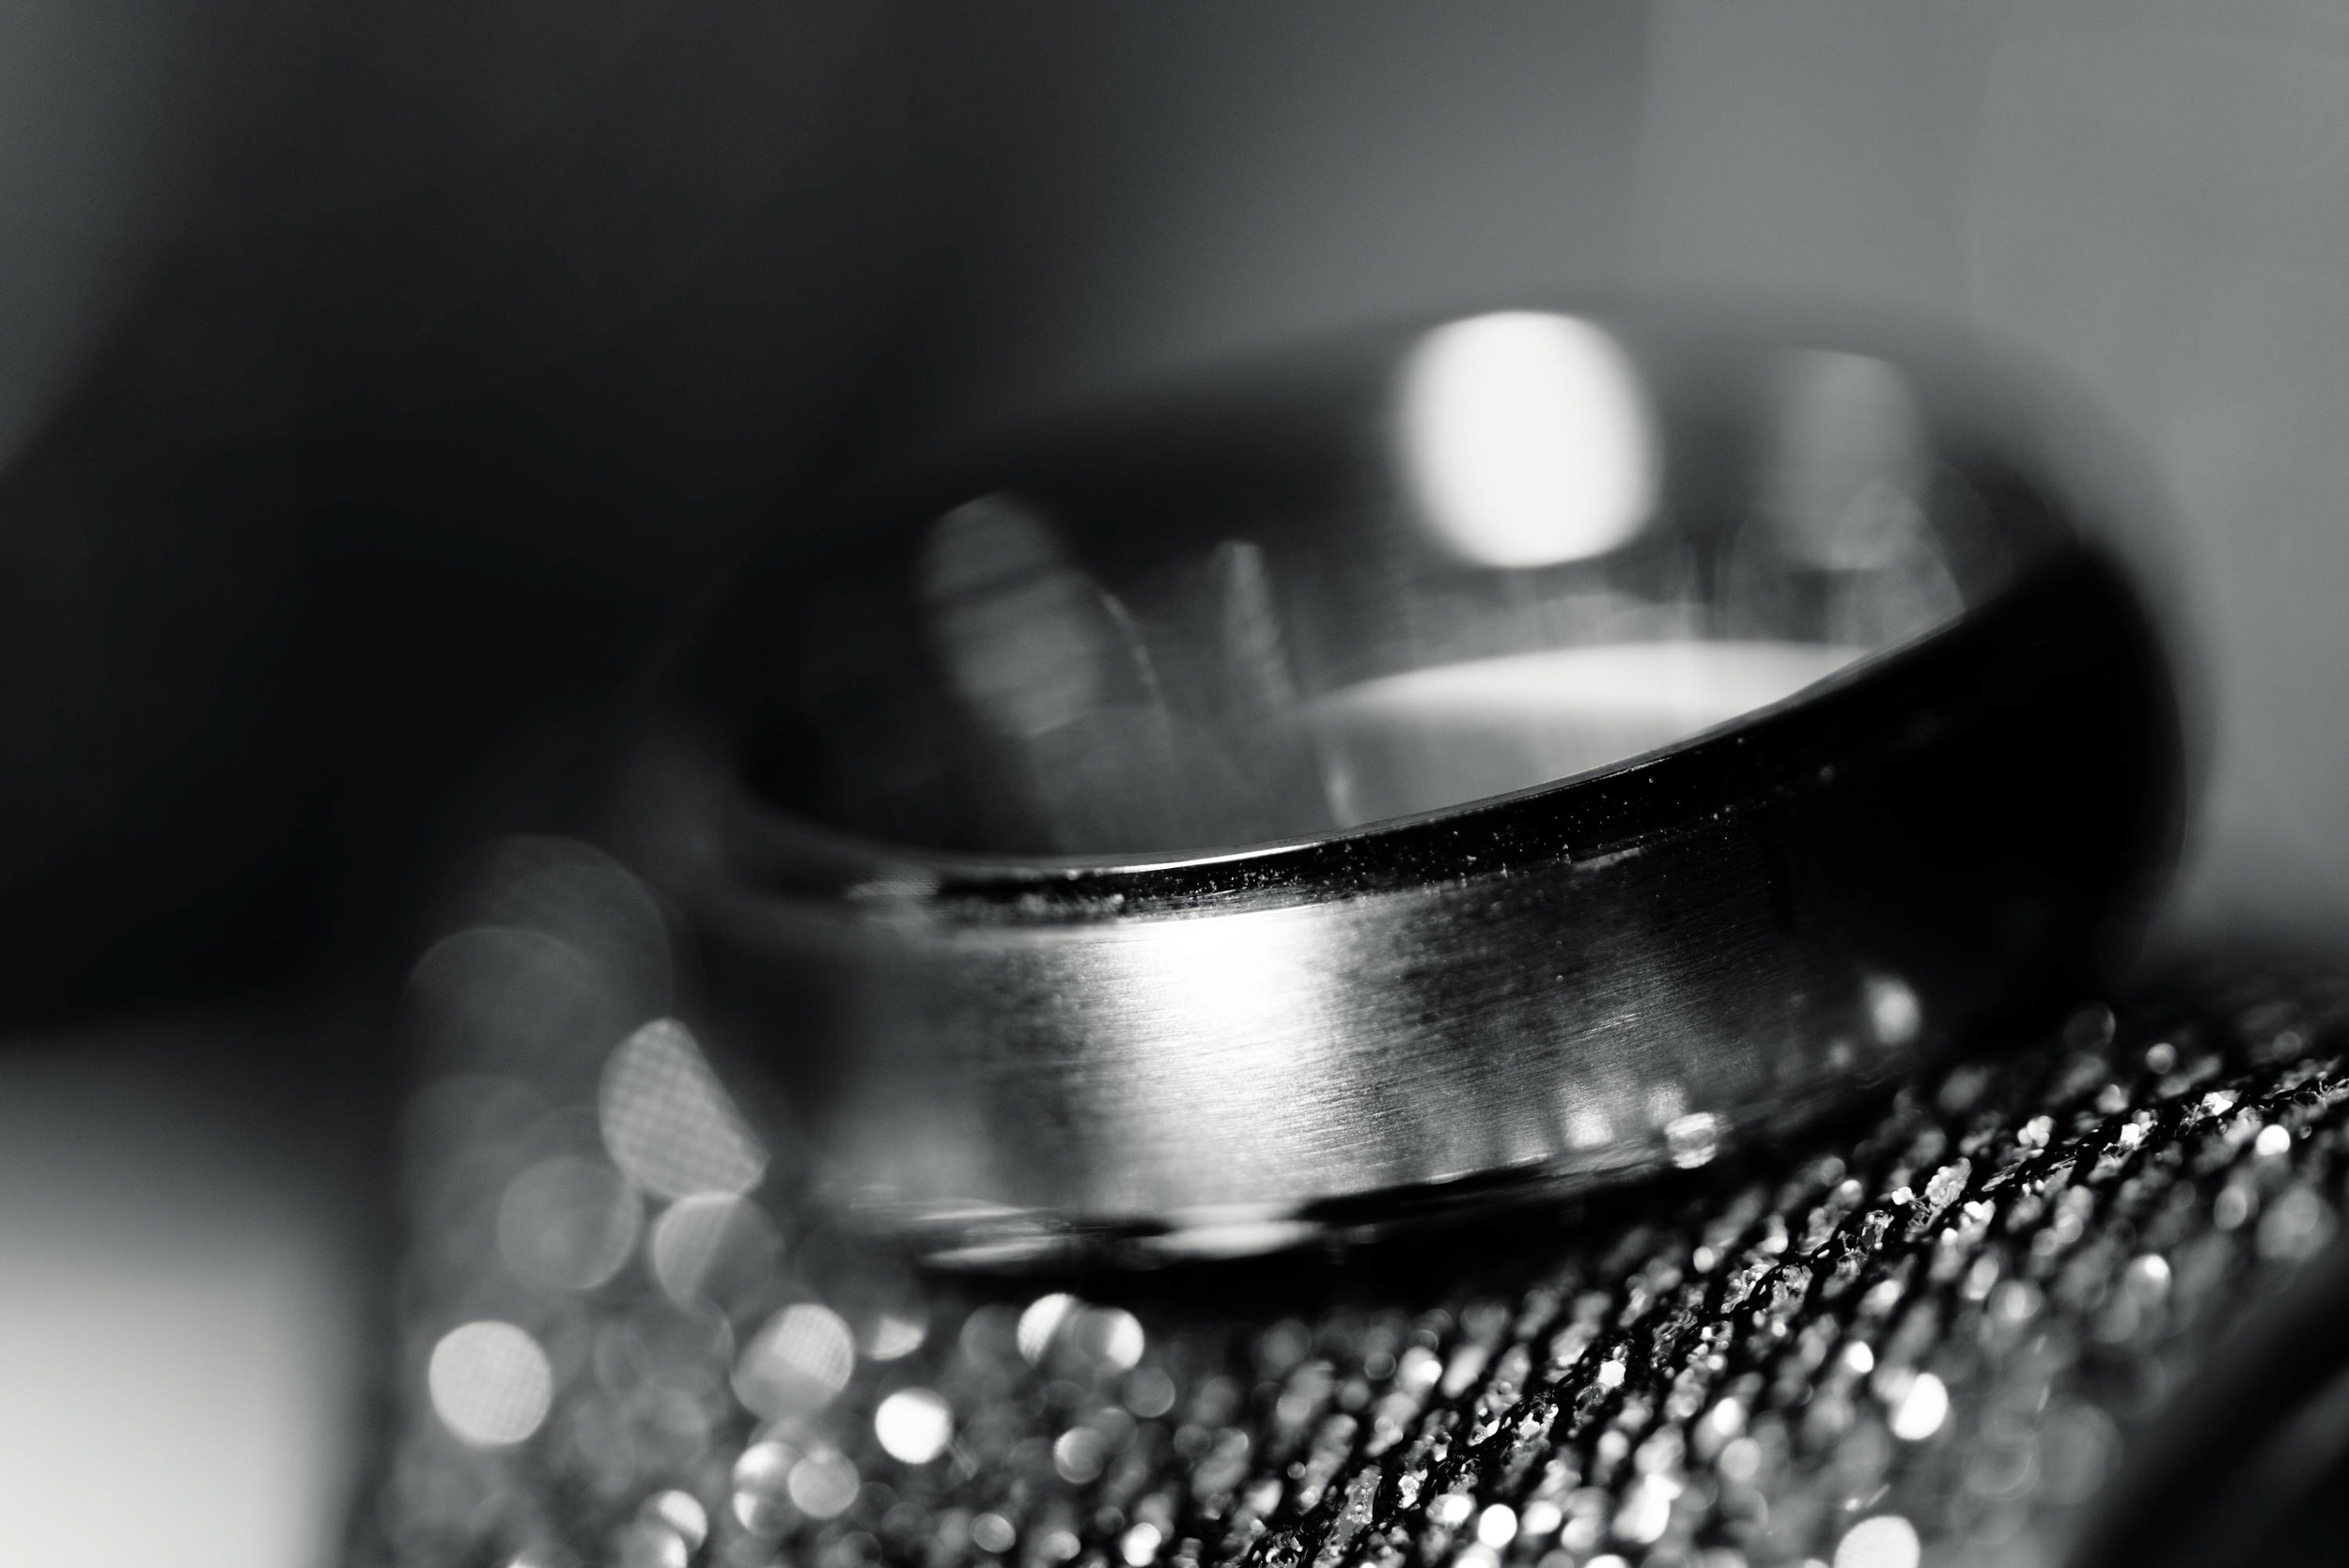 Wedding band on the bride's wedding shoes.